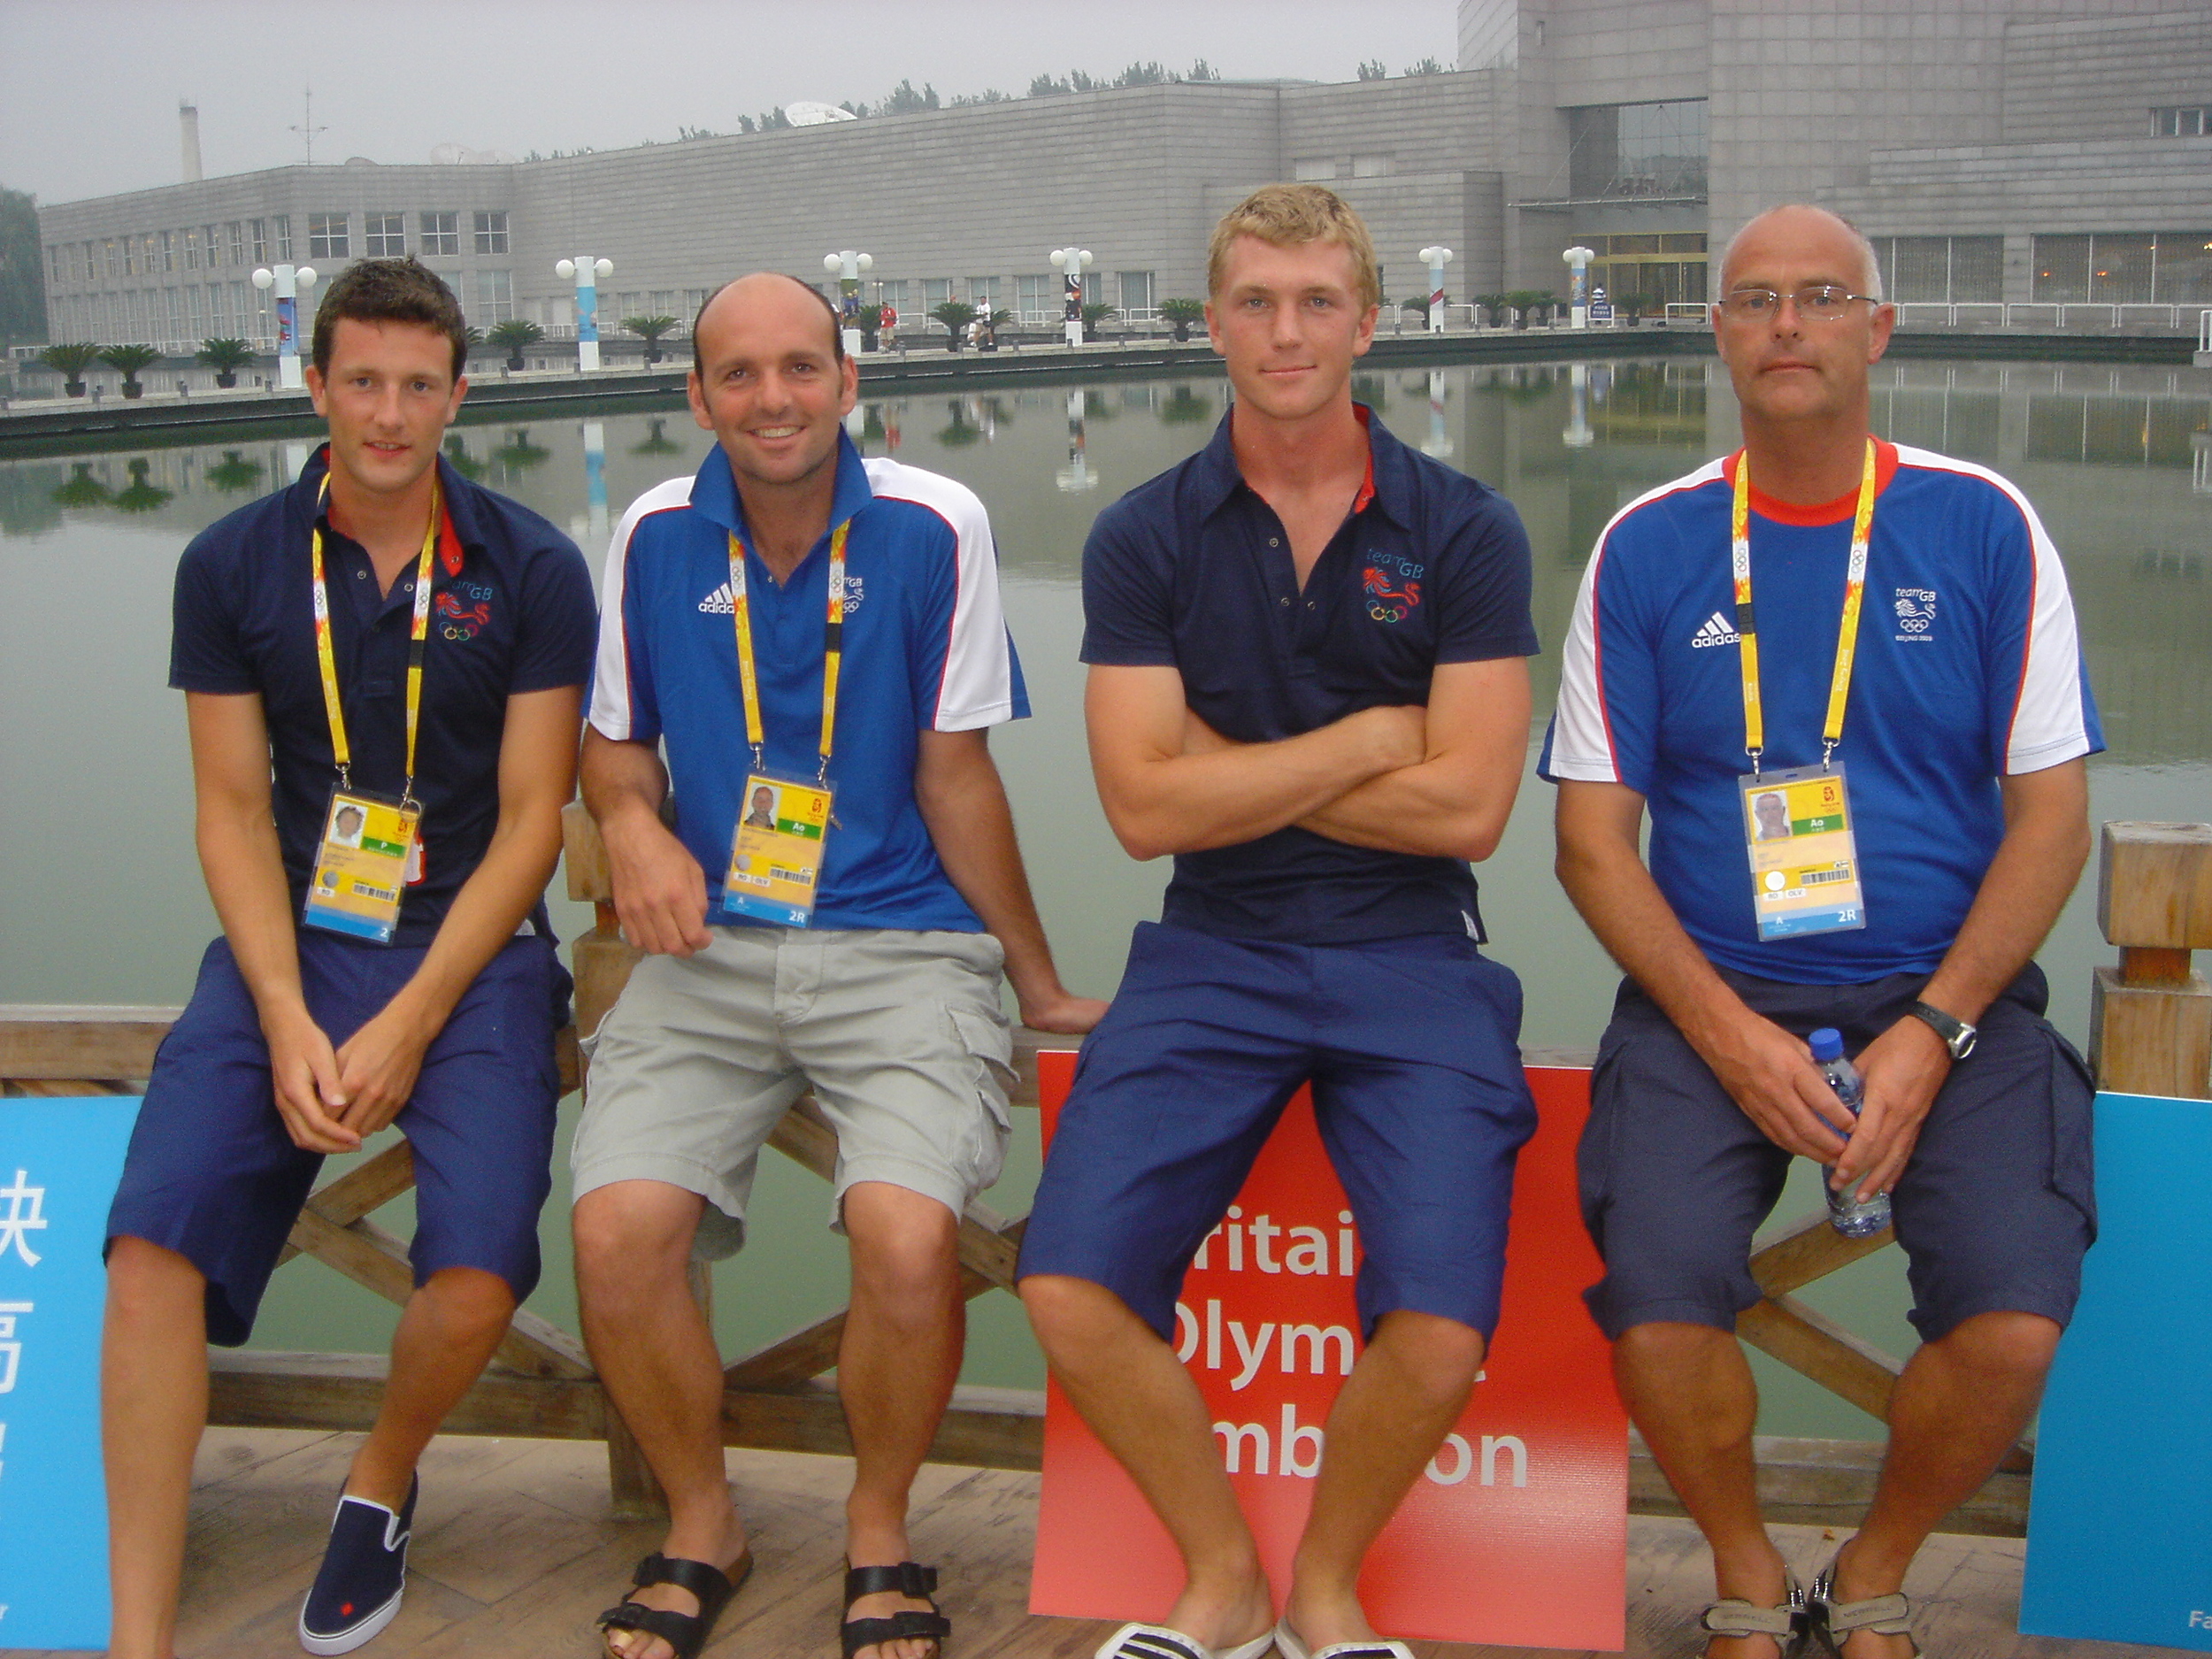 2008 Beijing Olympic spares with coaches on the night of the opening ceremony. (Left to Right: Tom Parker, Jonny Singfield, Alex Gregory, Pete Shepherd)